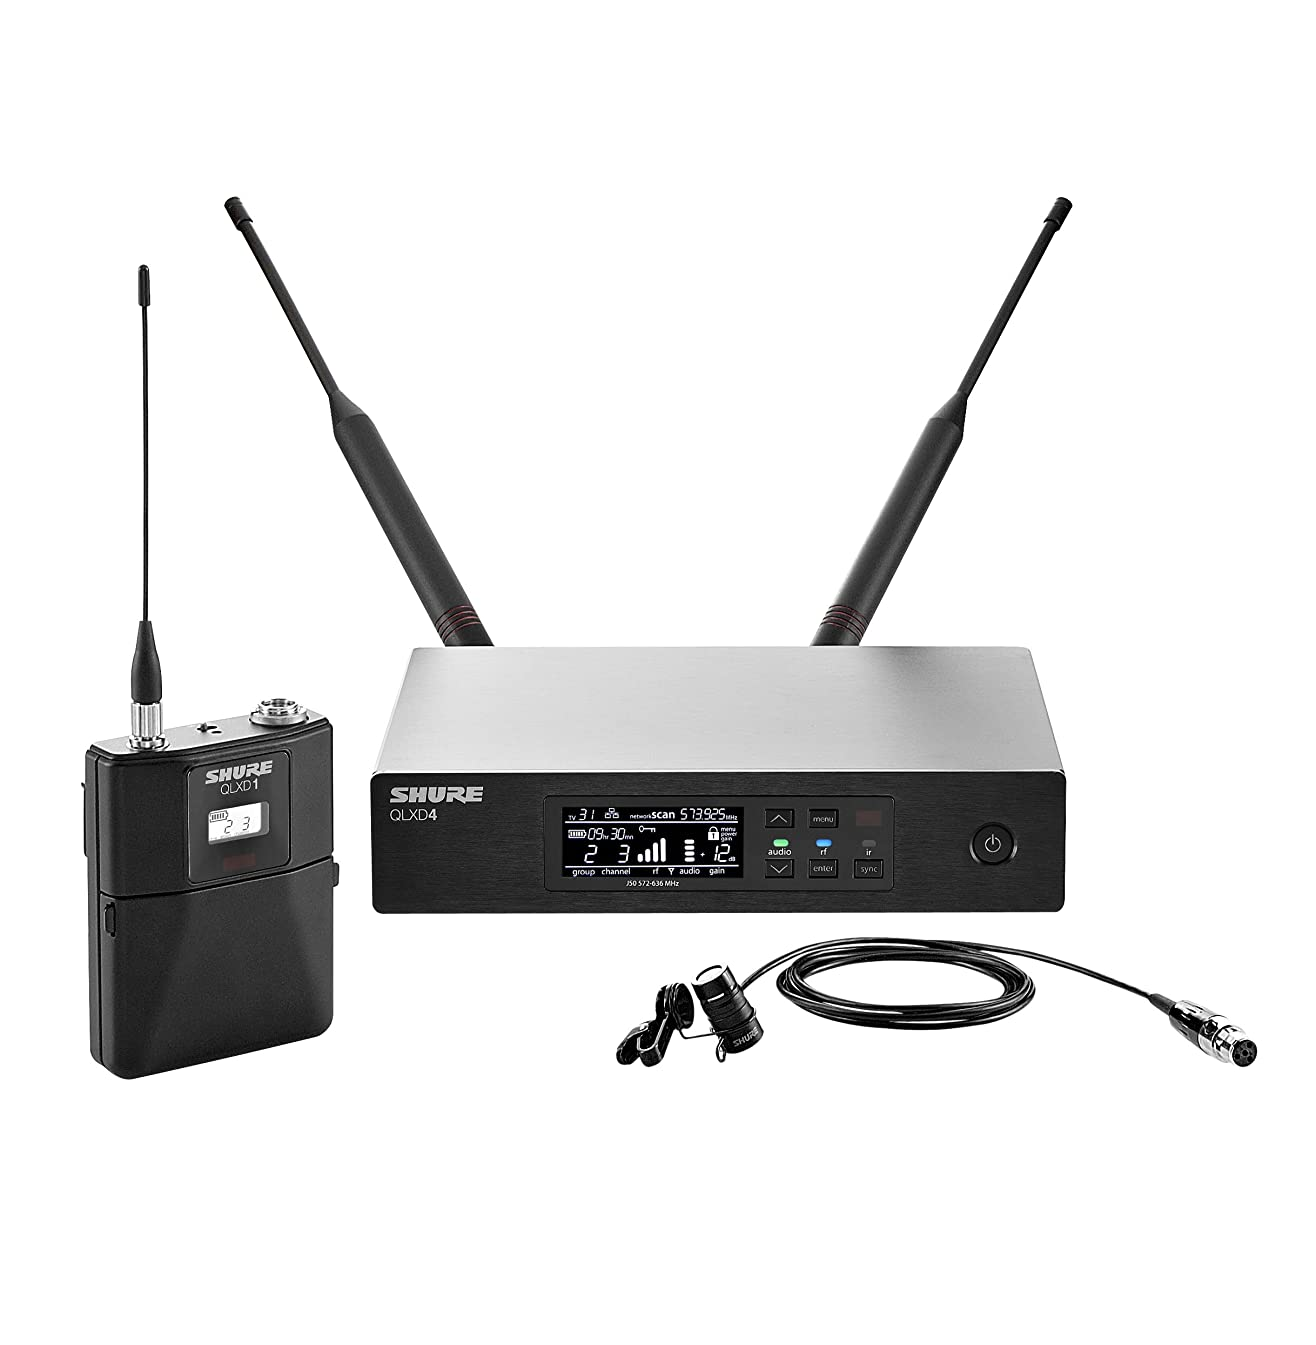 Shure QLXD14/84 Wireless System with WL184 Supercardioid Lavalier Microphone, H50